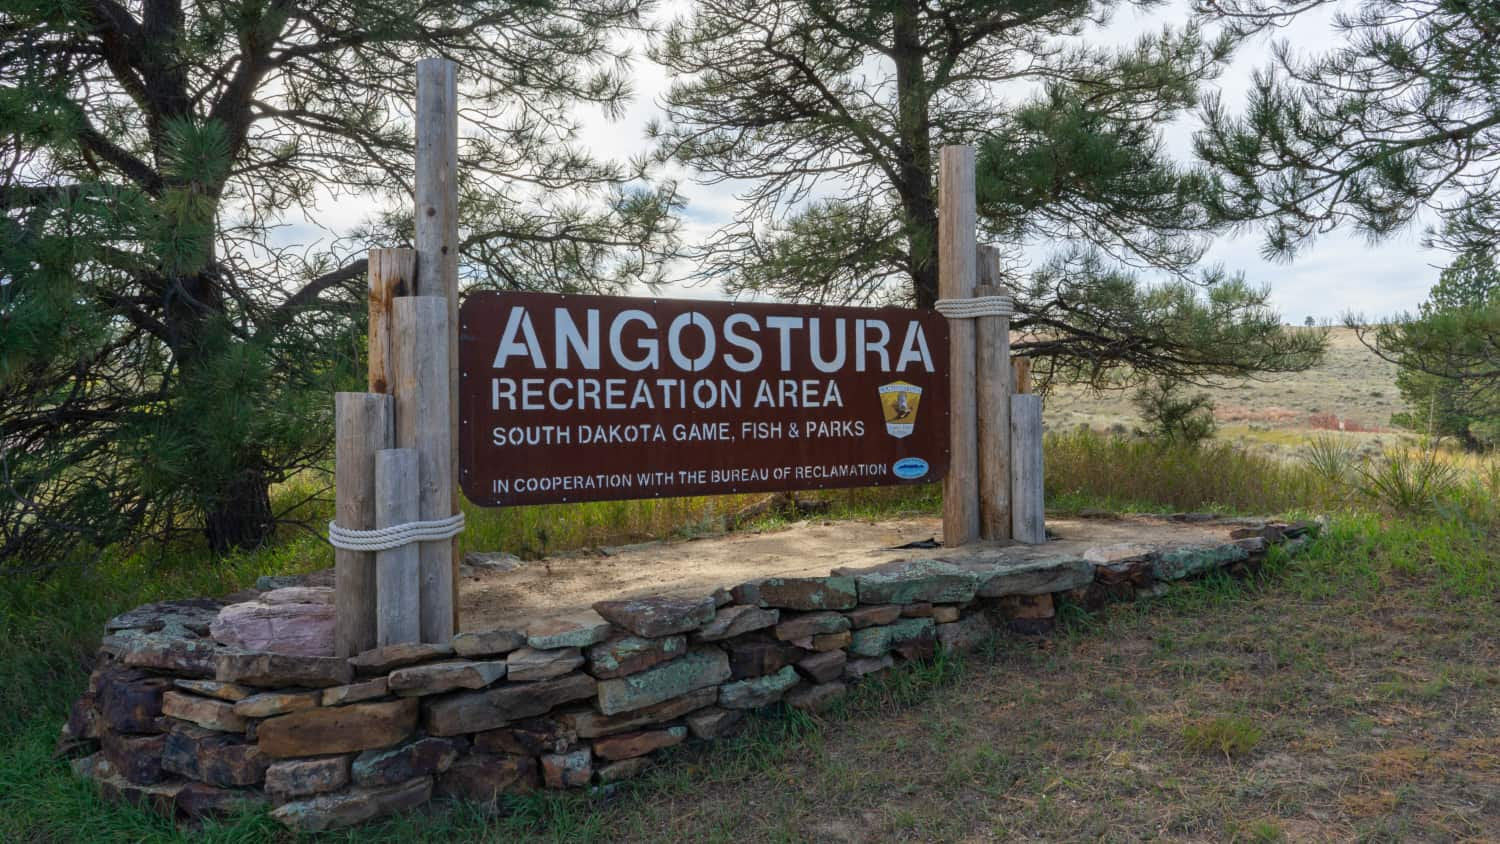 Entrance sign for pet-friendly Angostura Recreation Area in South Dakota's Black Hills